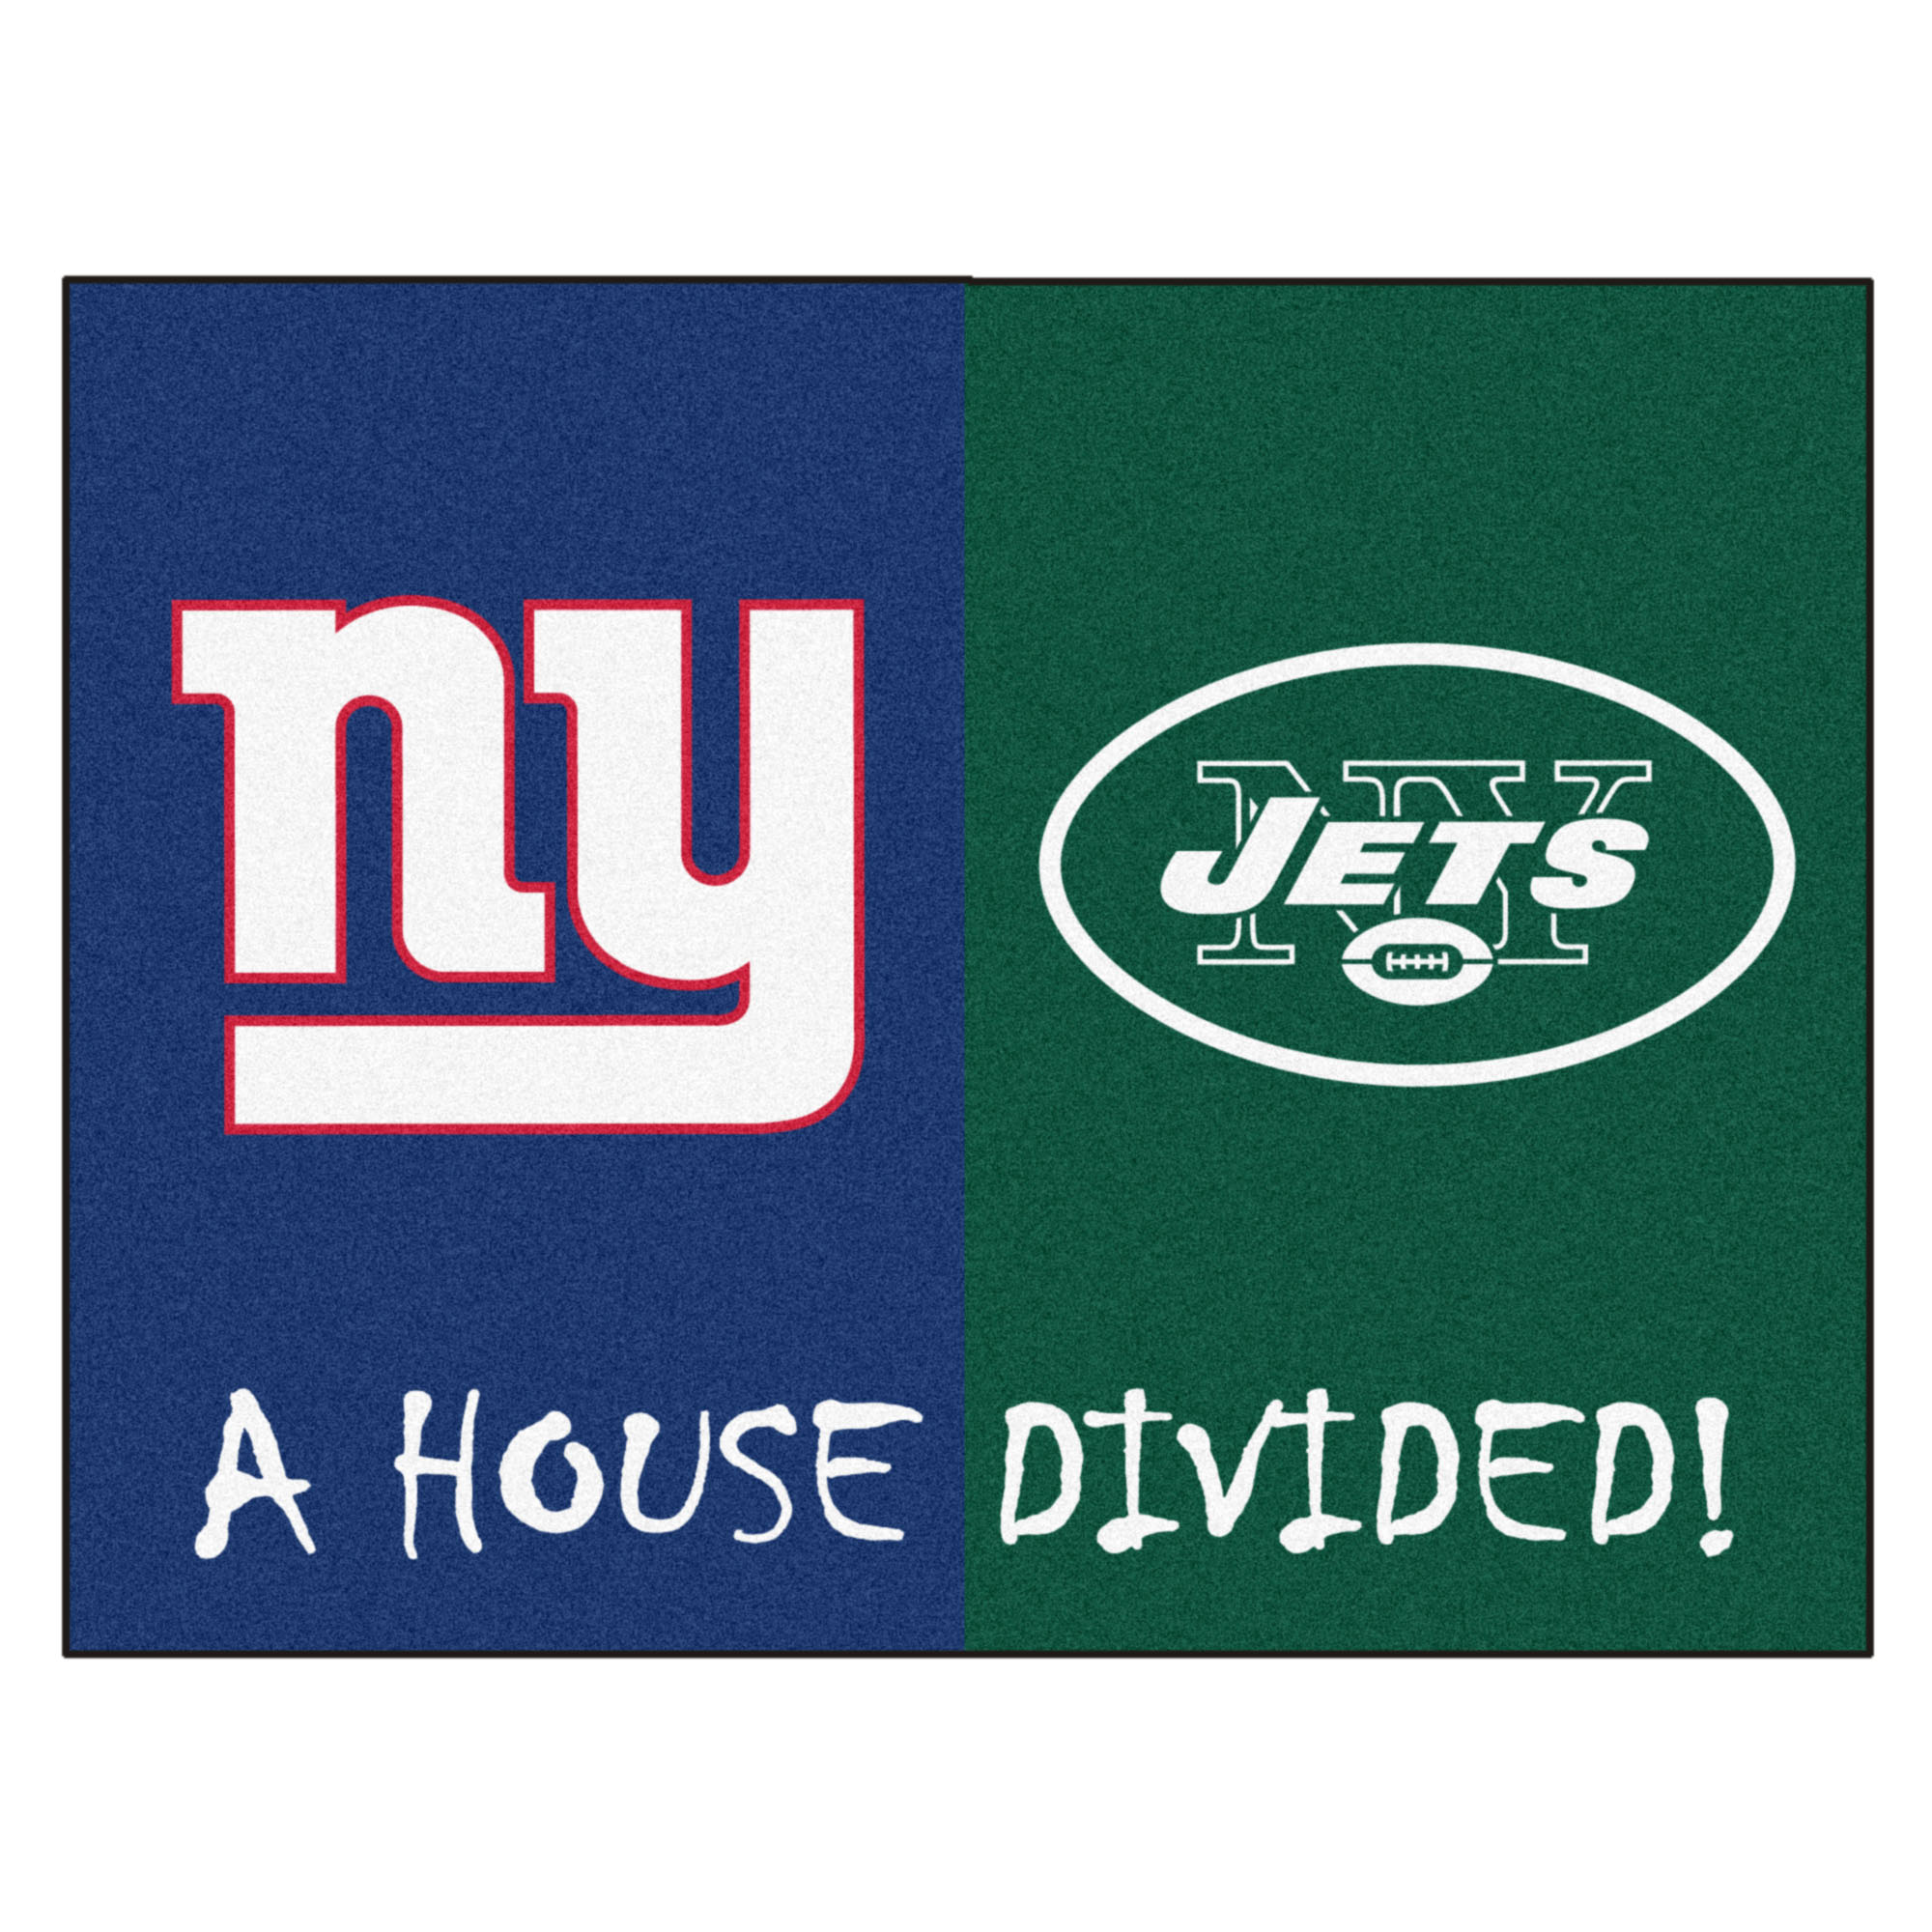 "NFL - Giants - Jets House Divided Rug 33.75""x42.5"""